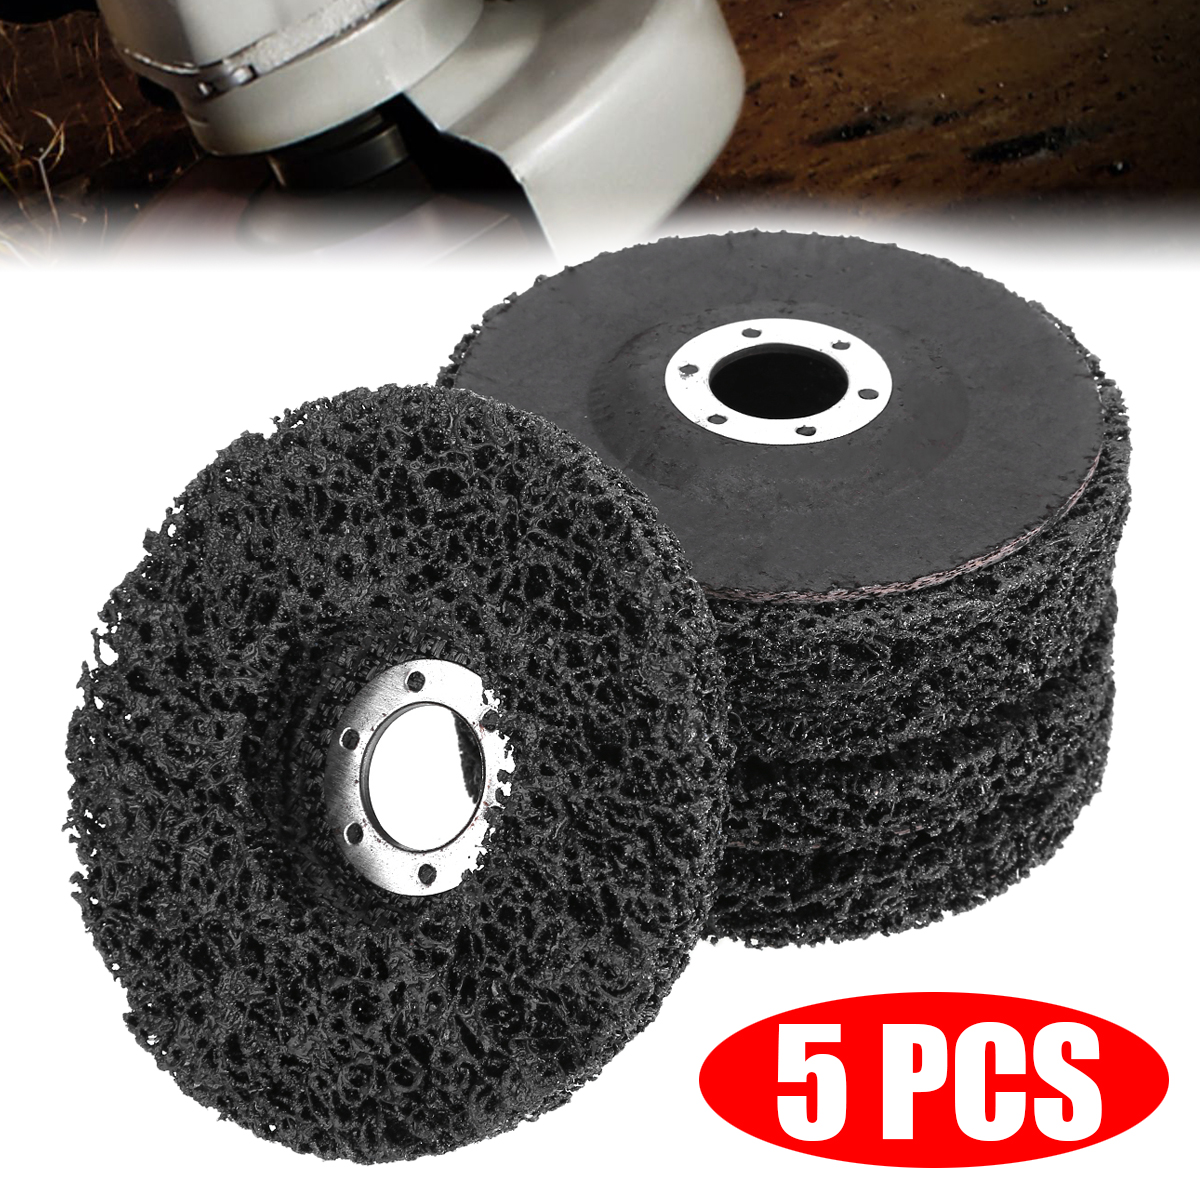 5Pcs Disc Grit Polishing Grinding Wheel Pad Angle Grinder Car Clean Paint Rust Abrasive Angle Power Tools Grinding Wheel